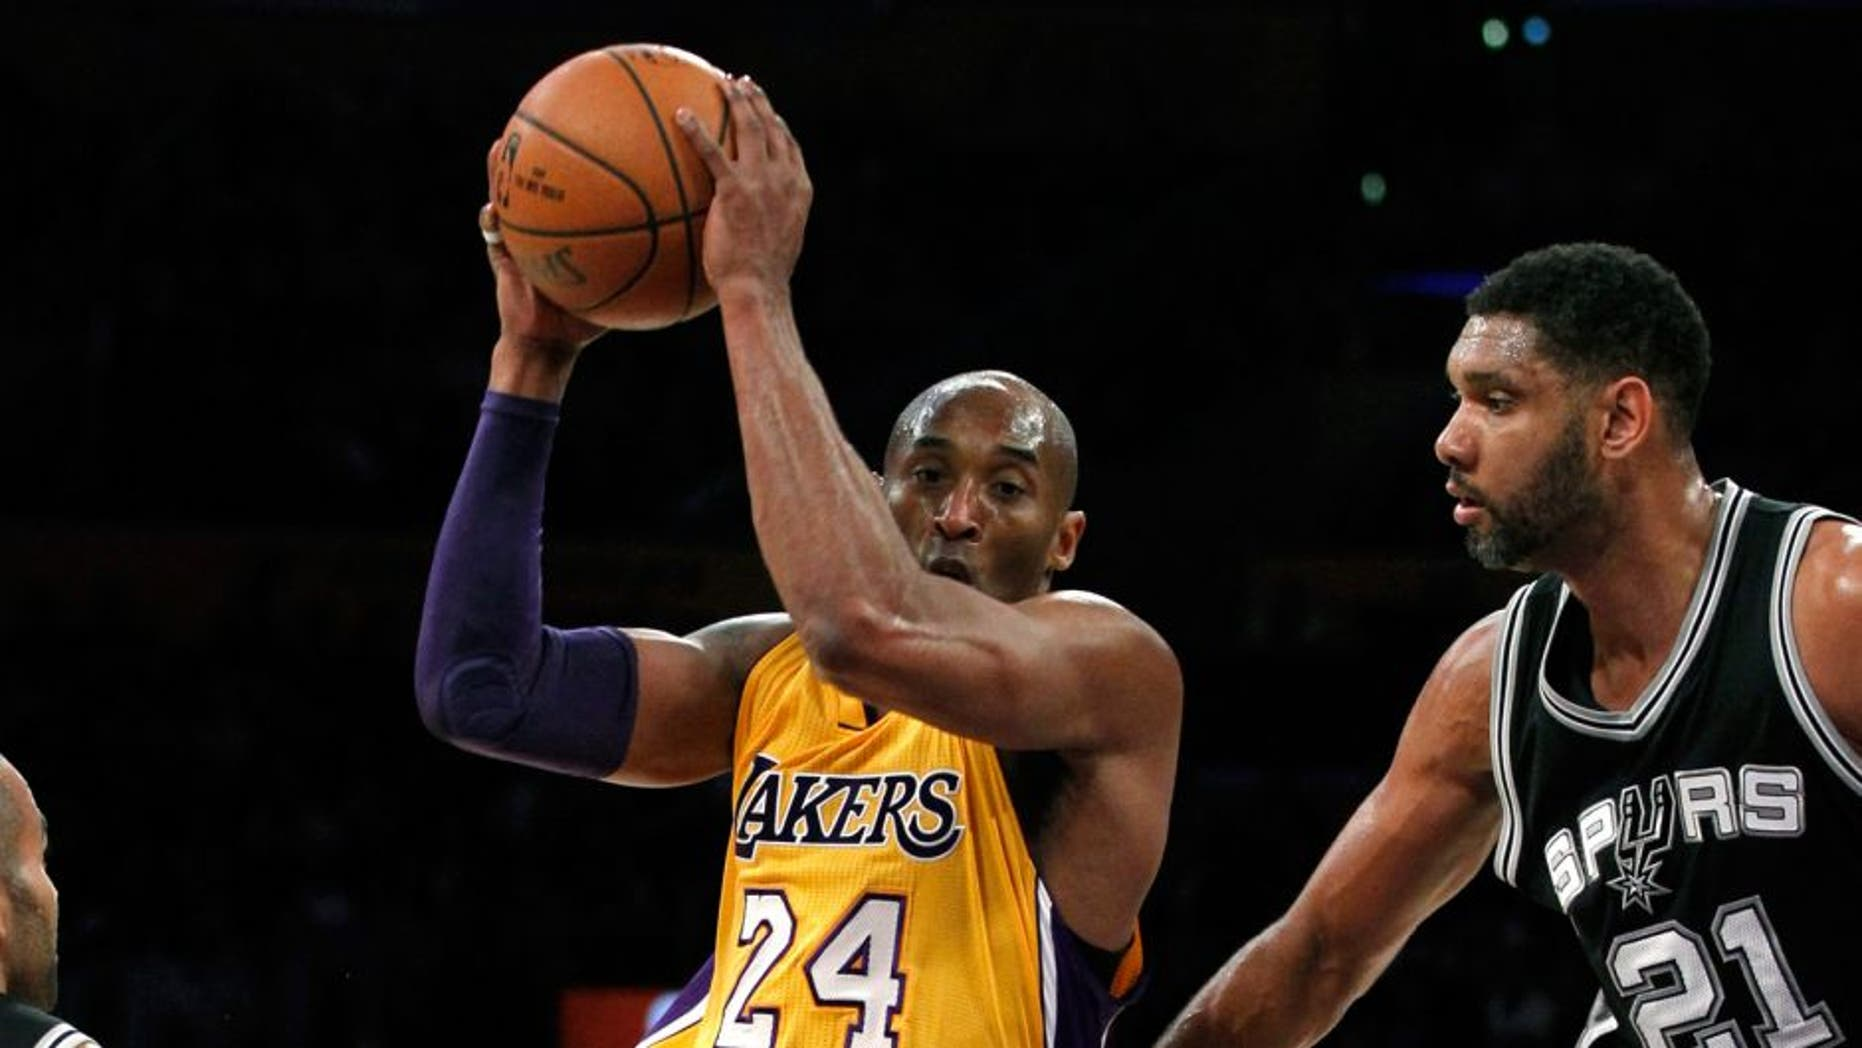 Los Angeles Lakers forward Kobe Bryant (24) drives the lane against San Antonio Spurs guard Tony Parker (9) and center Tim Duncan (21) during the first half of an NBA basketball game in Los Angeles, Friday, Feb. 19, 2016. (AP Photo/Alex Gallardo)